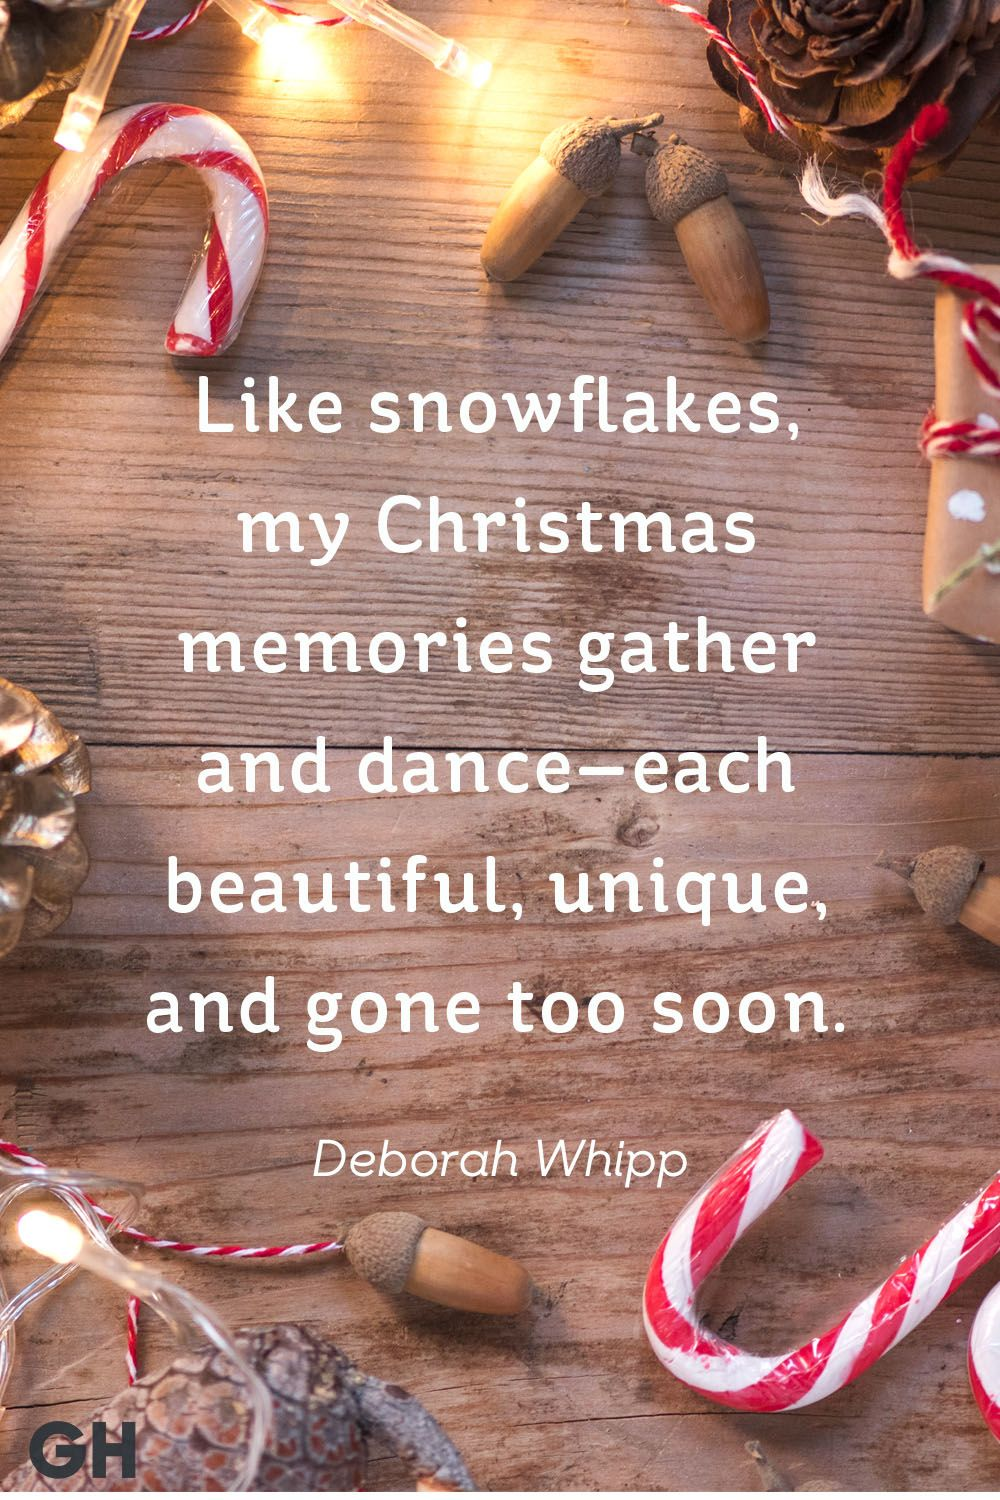 38 Best Christmas Quotes of All Time